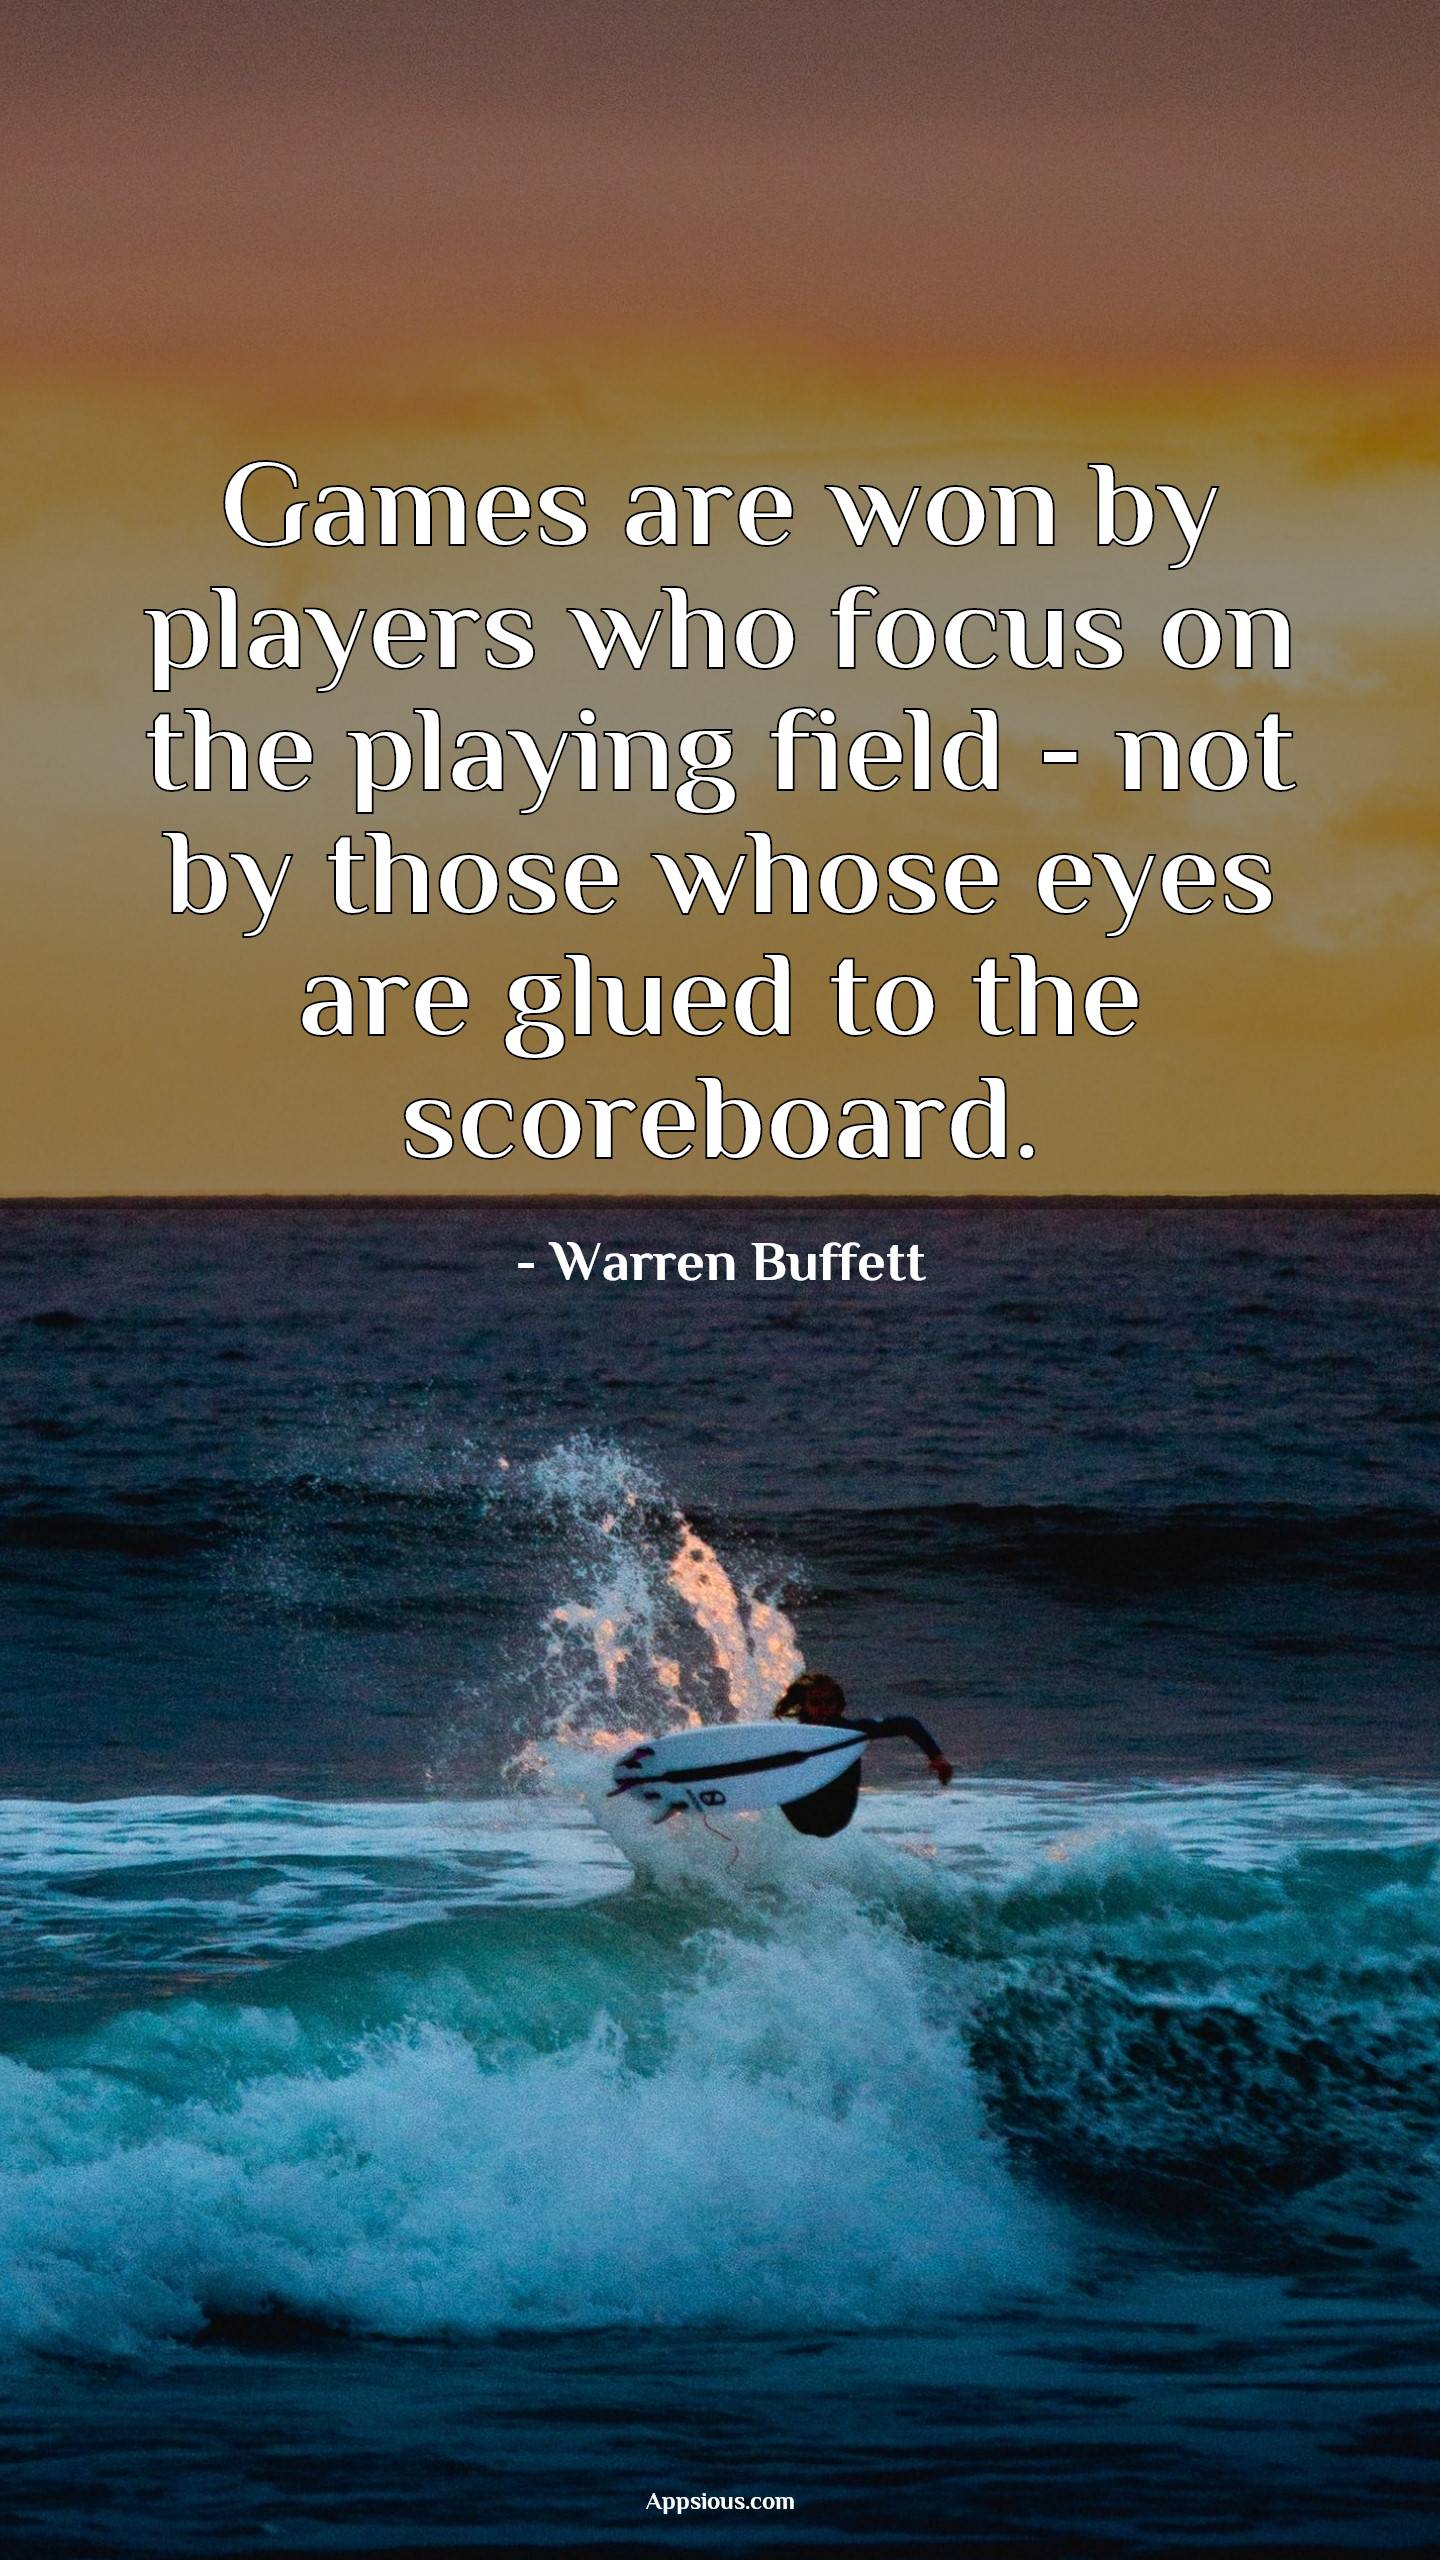 Games are won by players who focus on the playing field - not by those whose eyes are glued to the scoreboard.